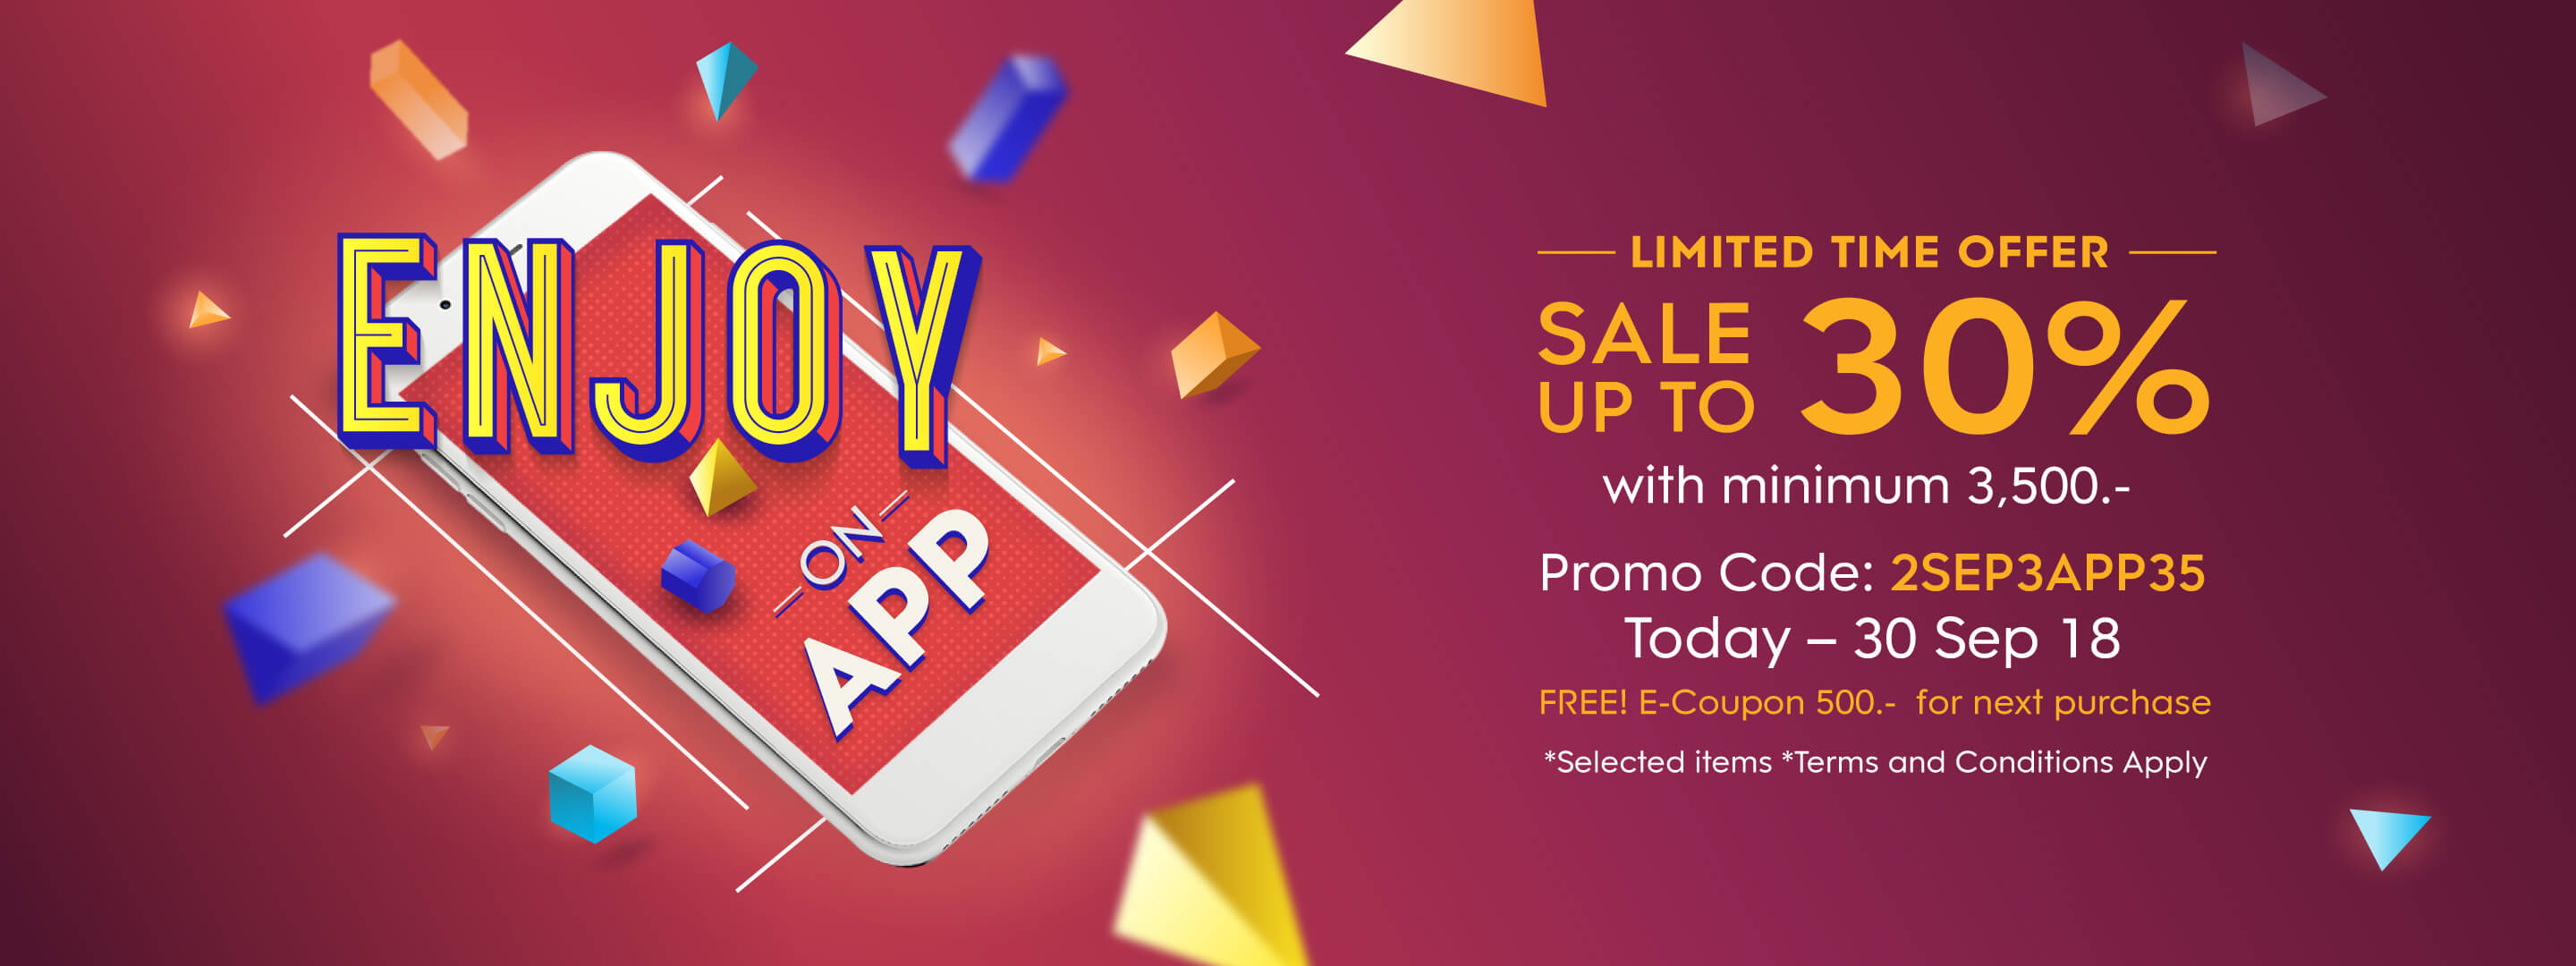 Purchasing Power Promo Code >> King Power Condition Enjoy On App Sale Up To 30 Off